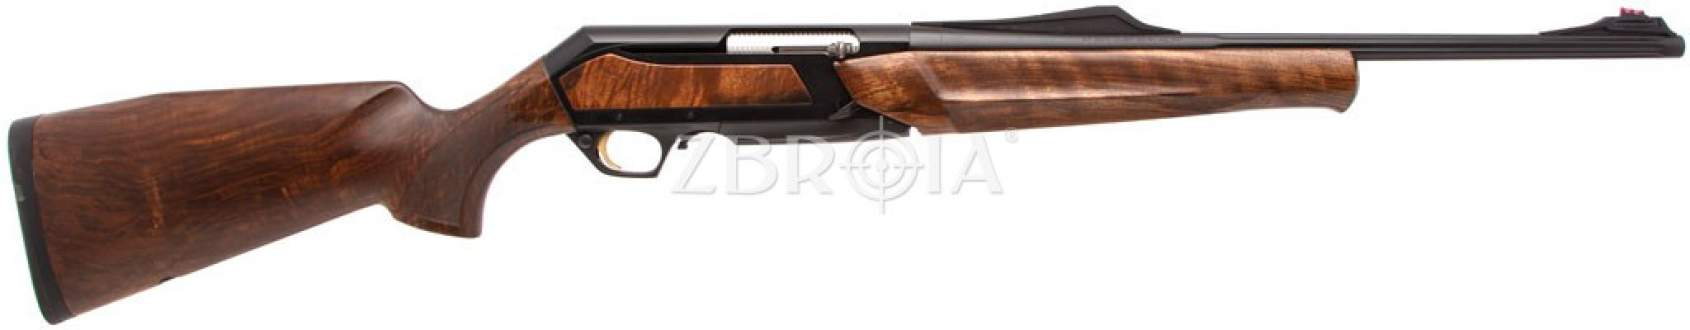 Карабин Browning BAR Zenith Prestige Wood Fluted HC кал. 30-06